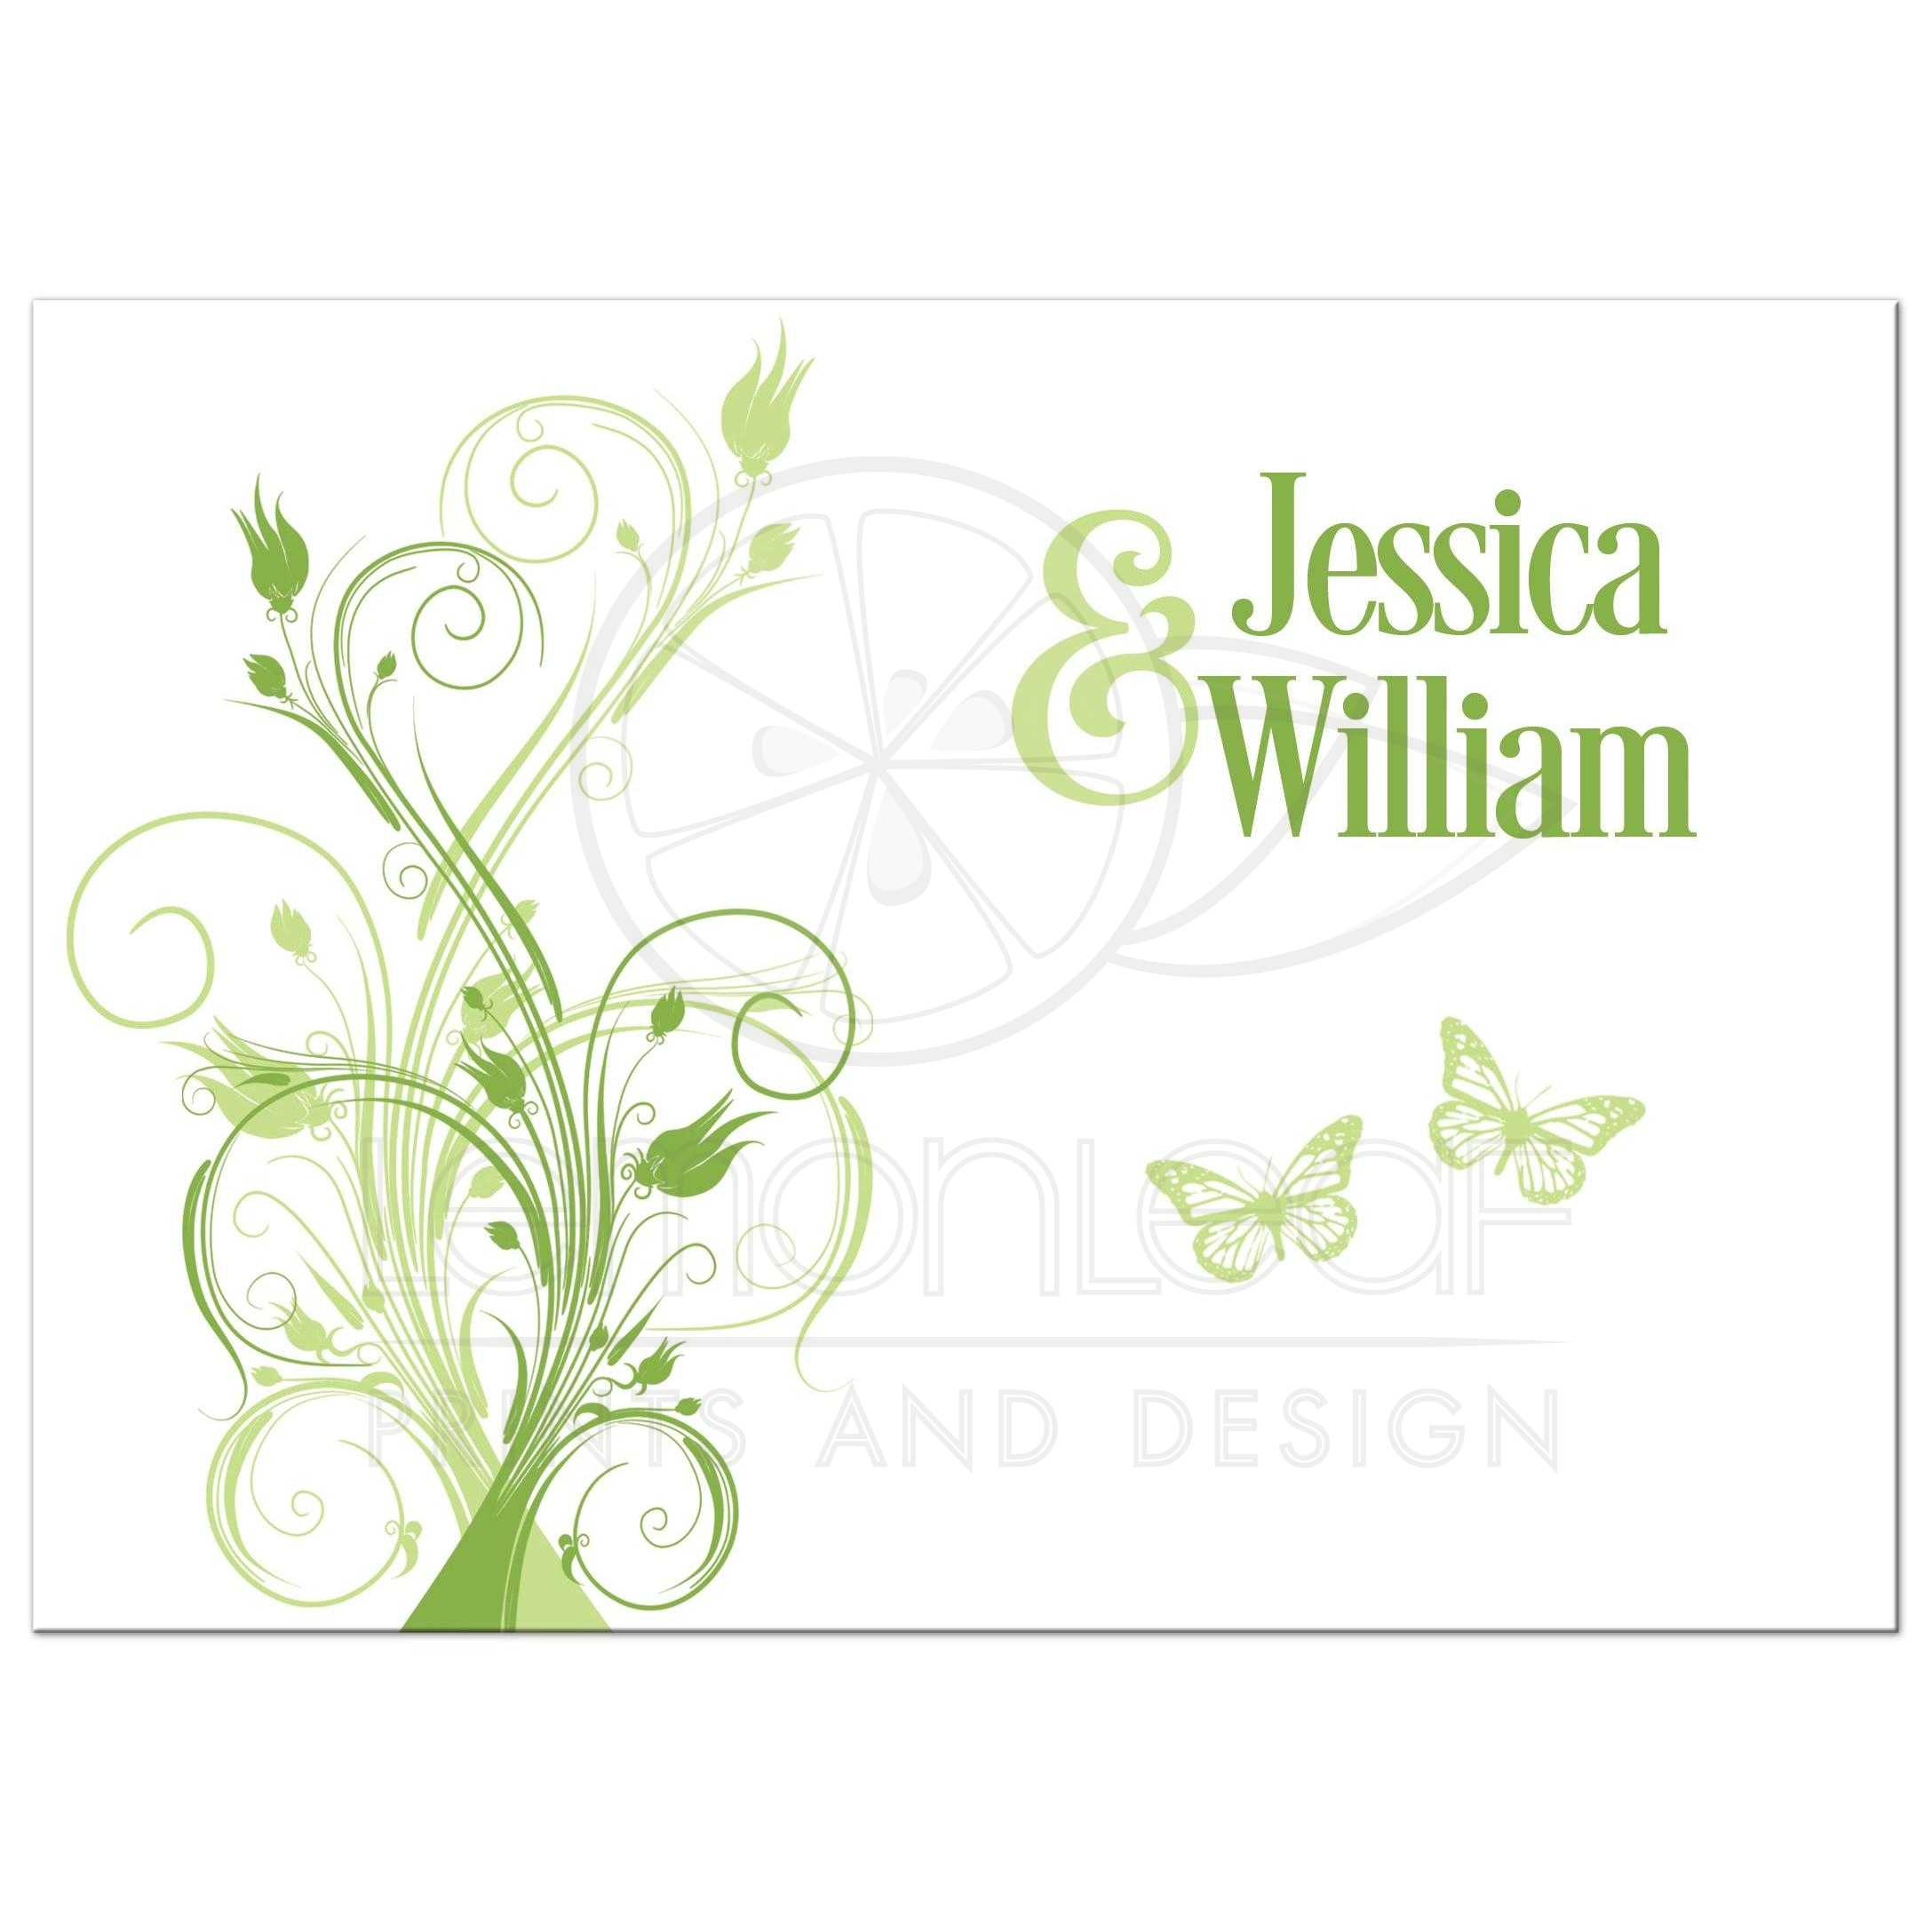 Greenery Wedding Invitation | Green, Celadon, White Floral Vines ...